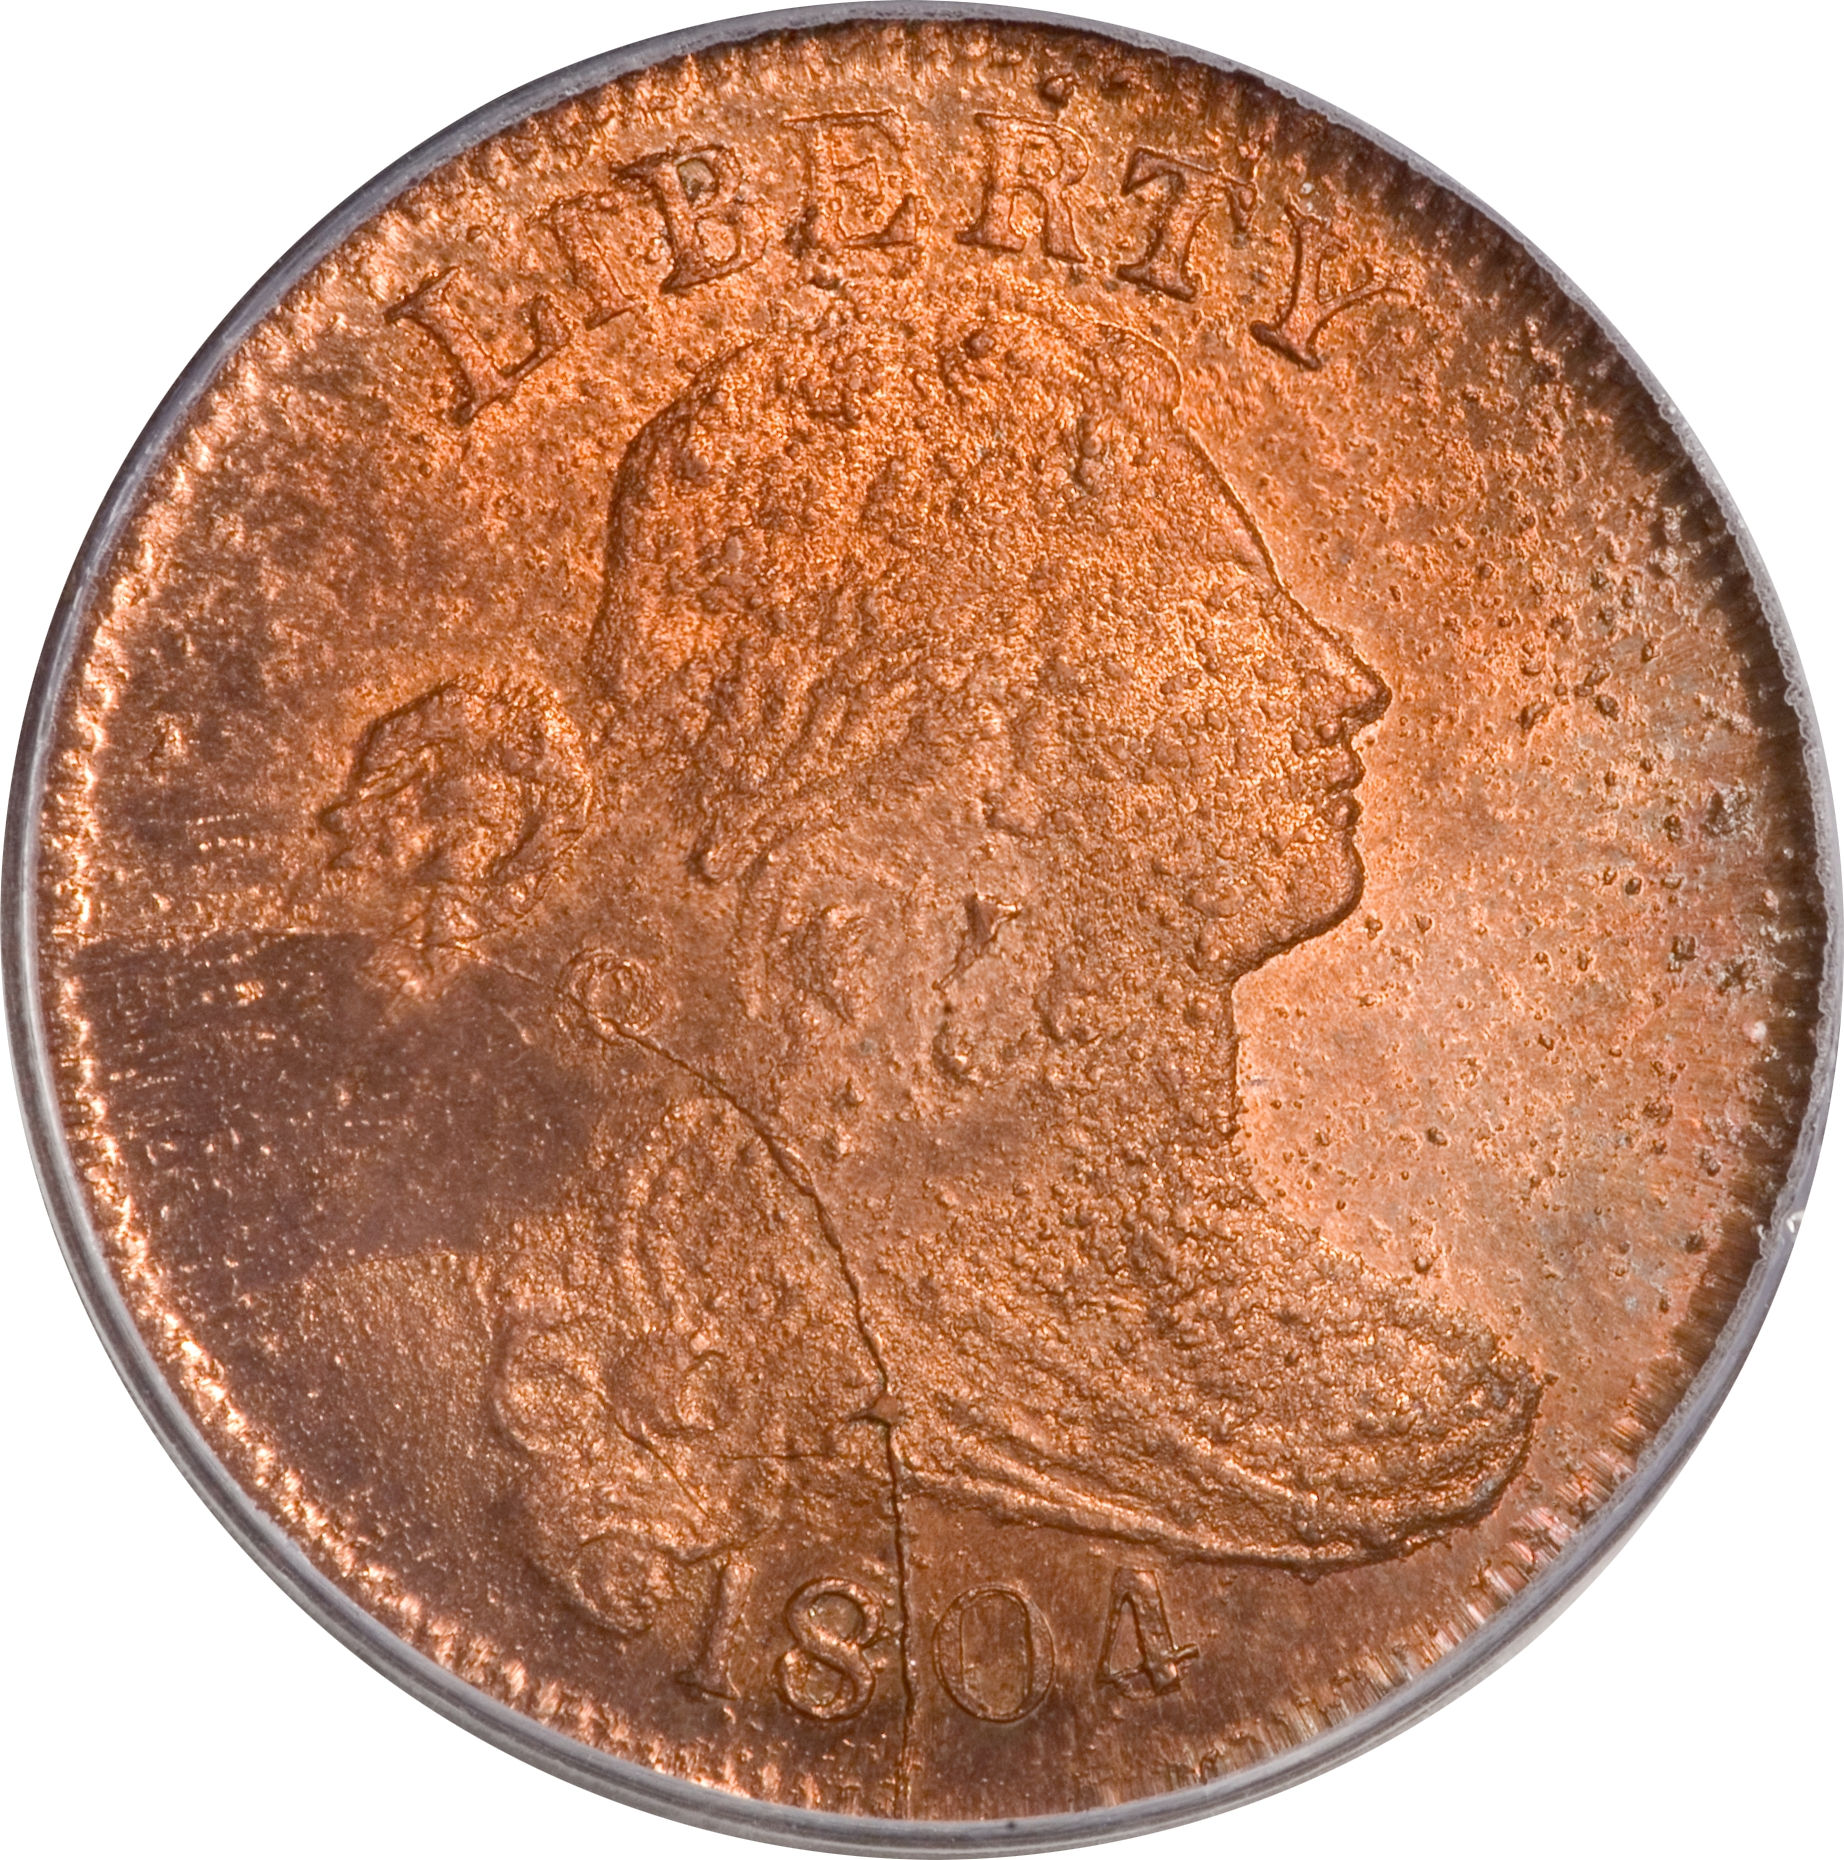 Obverse of PCGS MS-66 Red 1804 restrike large cent, offered as Lot 1031 in the 2009 April-May Cincinnati, Ohio, Central States Numismatic Society U.S. Coin Auction.